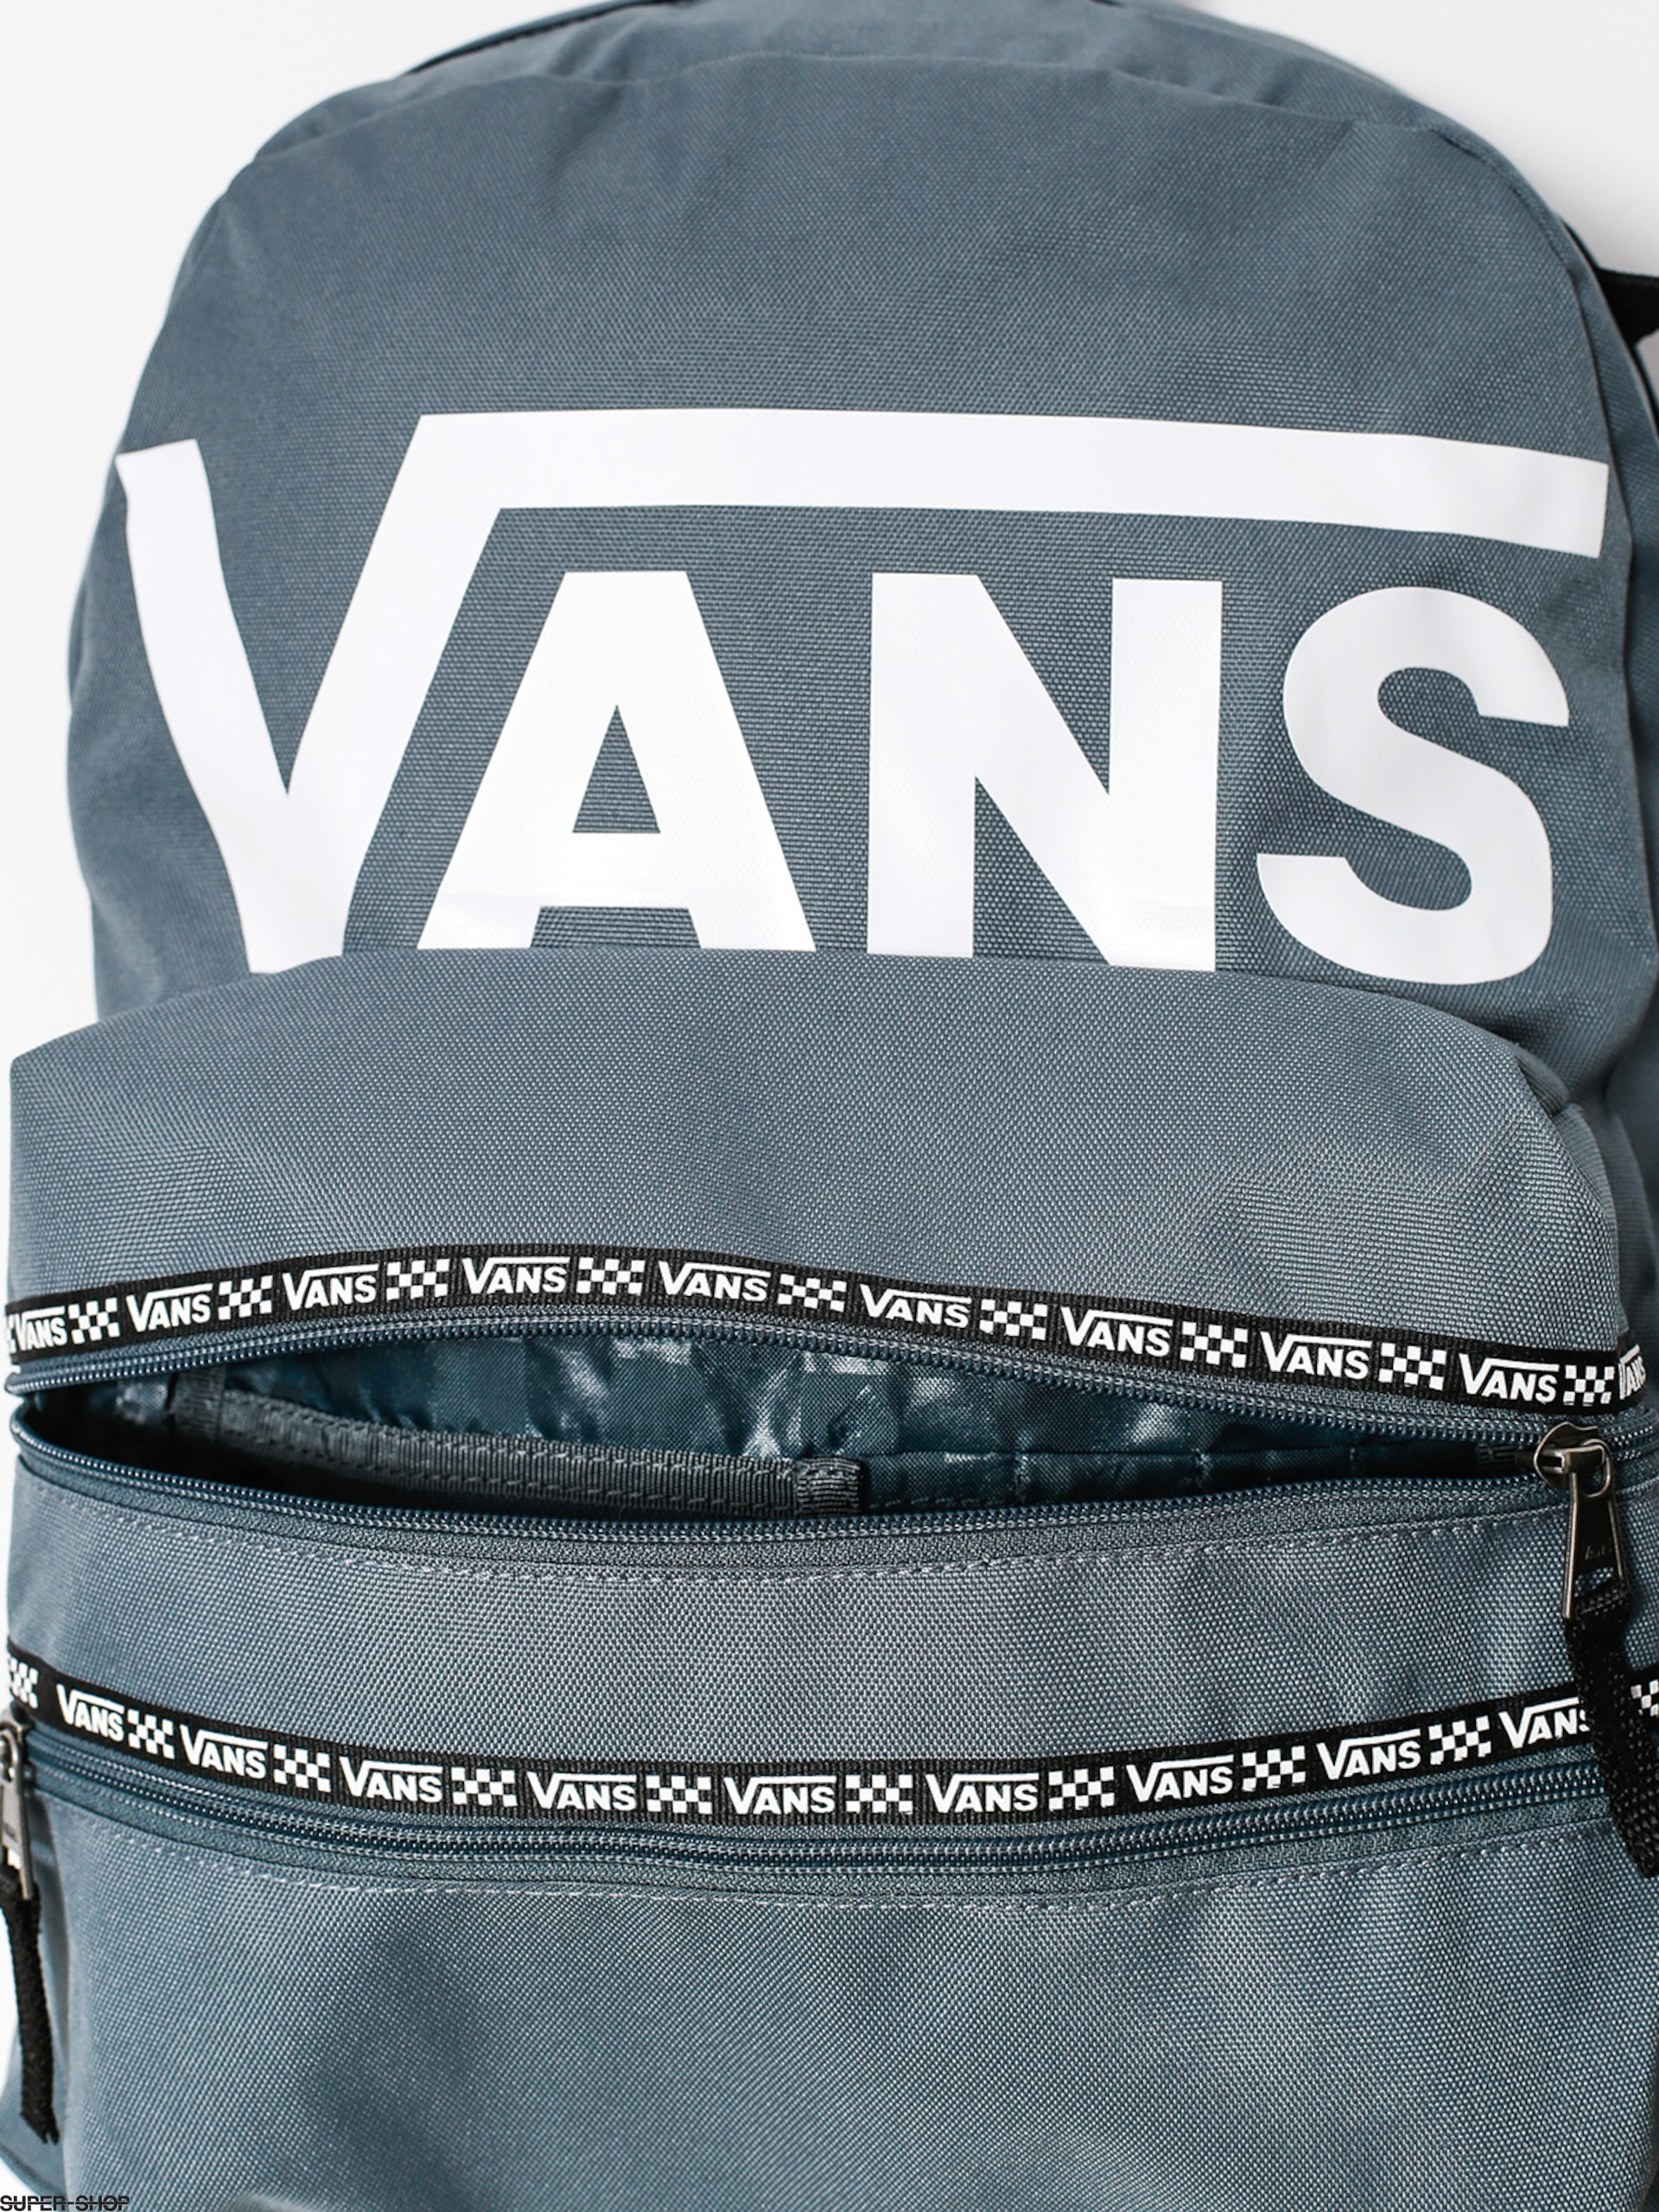 b053c120b6 Vans Sporty Realm Backpack Red